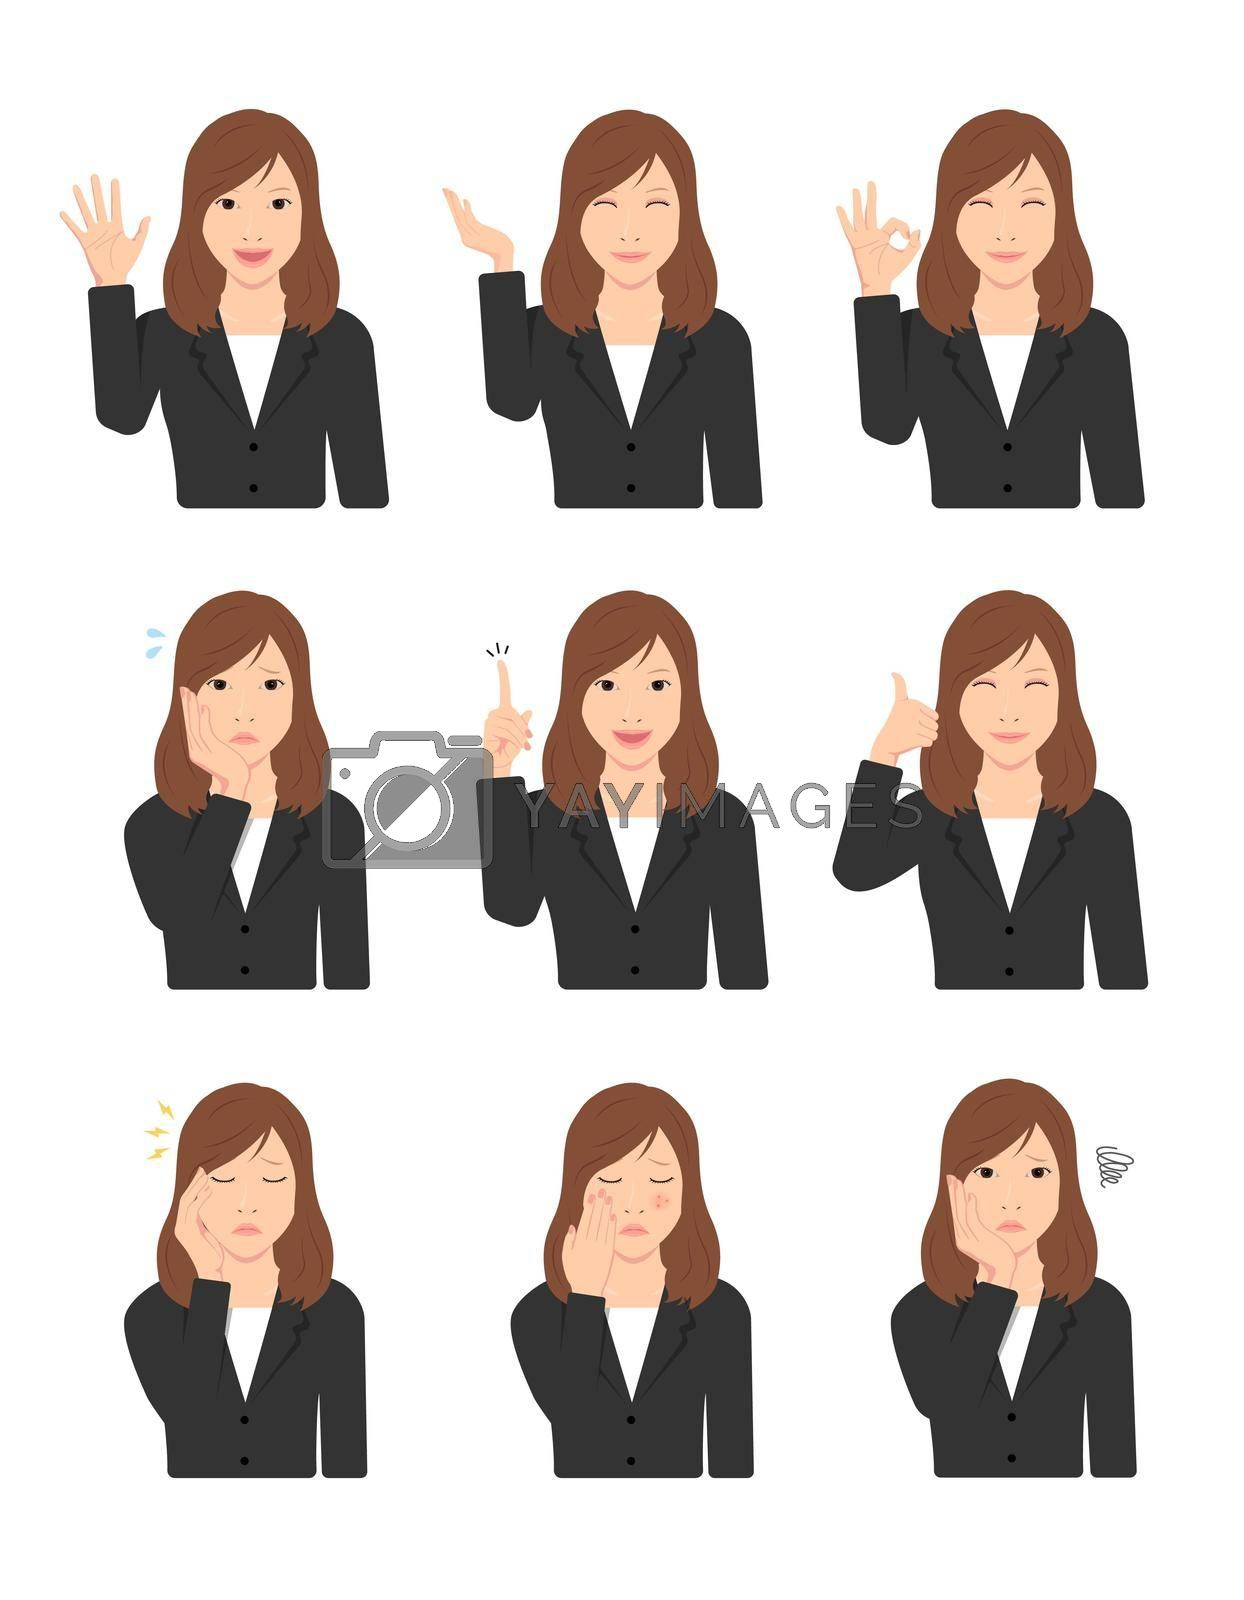 Young asian woman (upper body / waist up ) vector illustration set / hand gesture and face pattern variations.